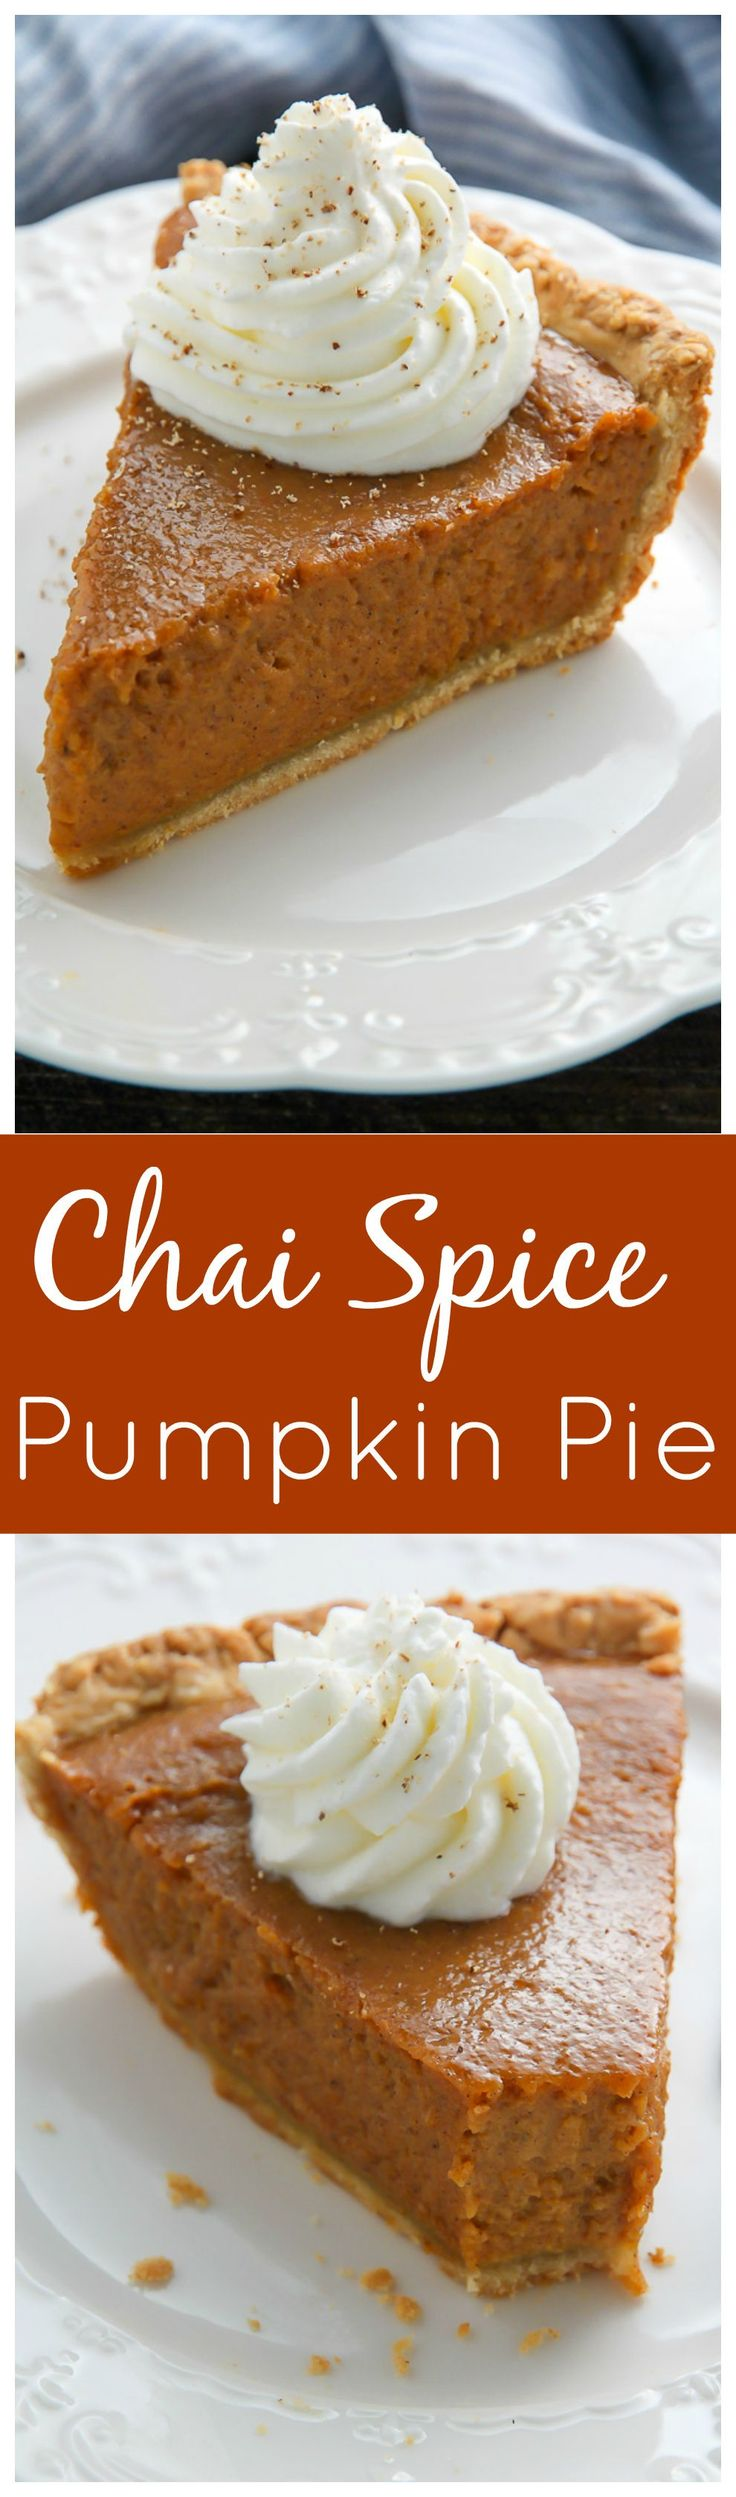 Chai Spice Pumpkin Pie - every bite is silky smooth!!!